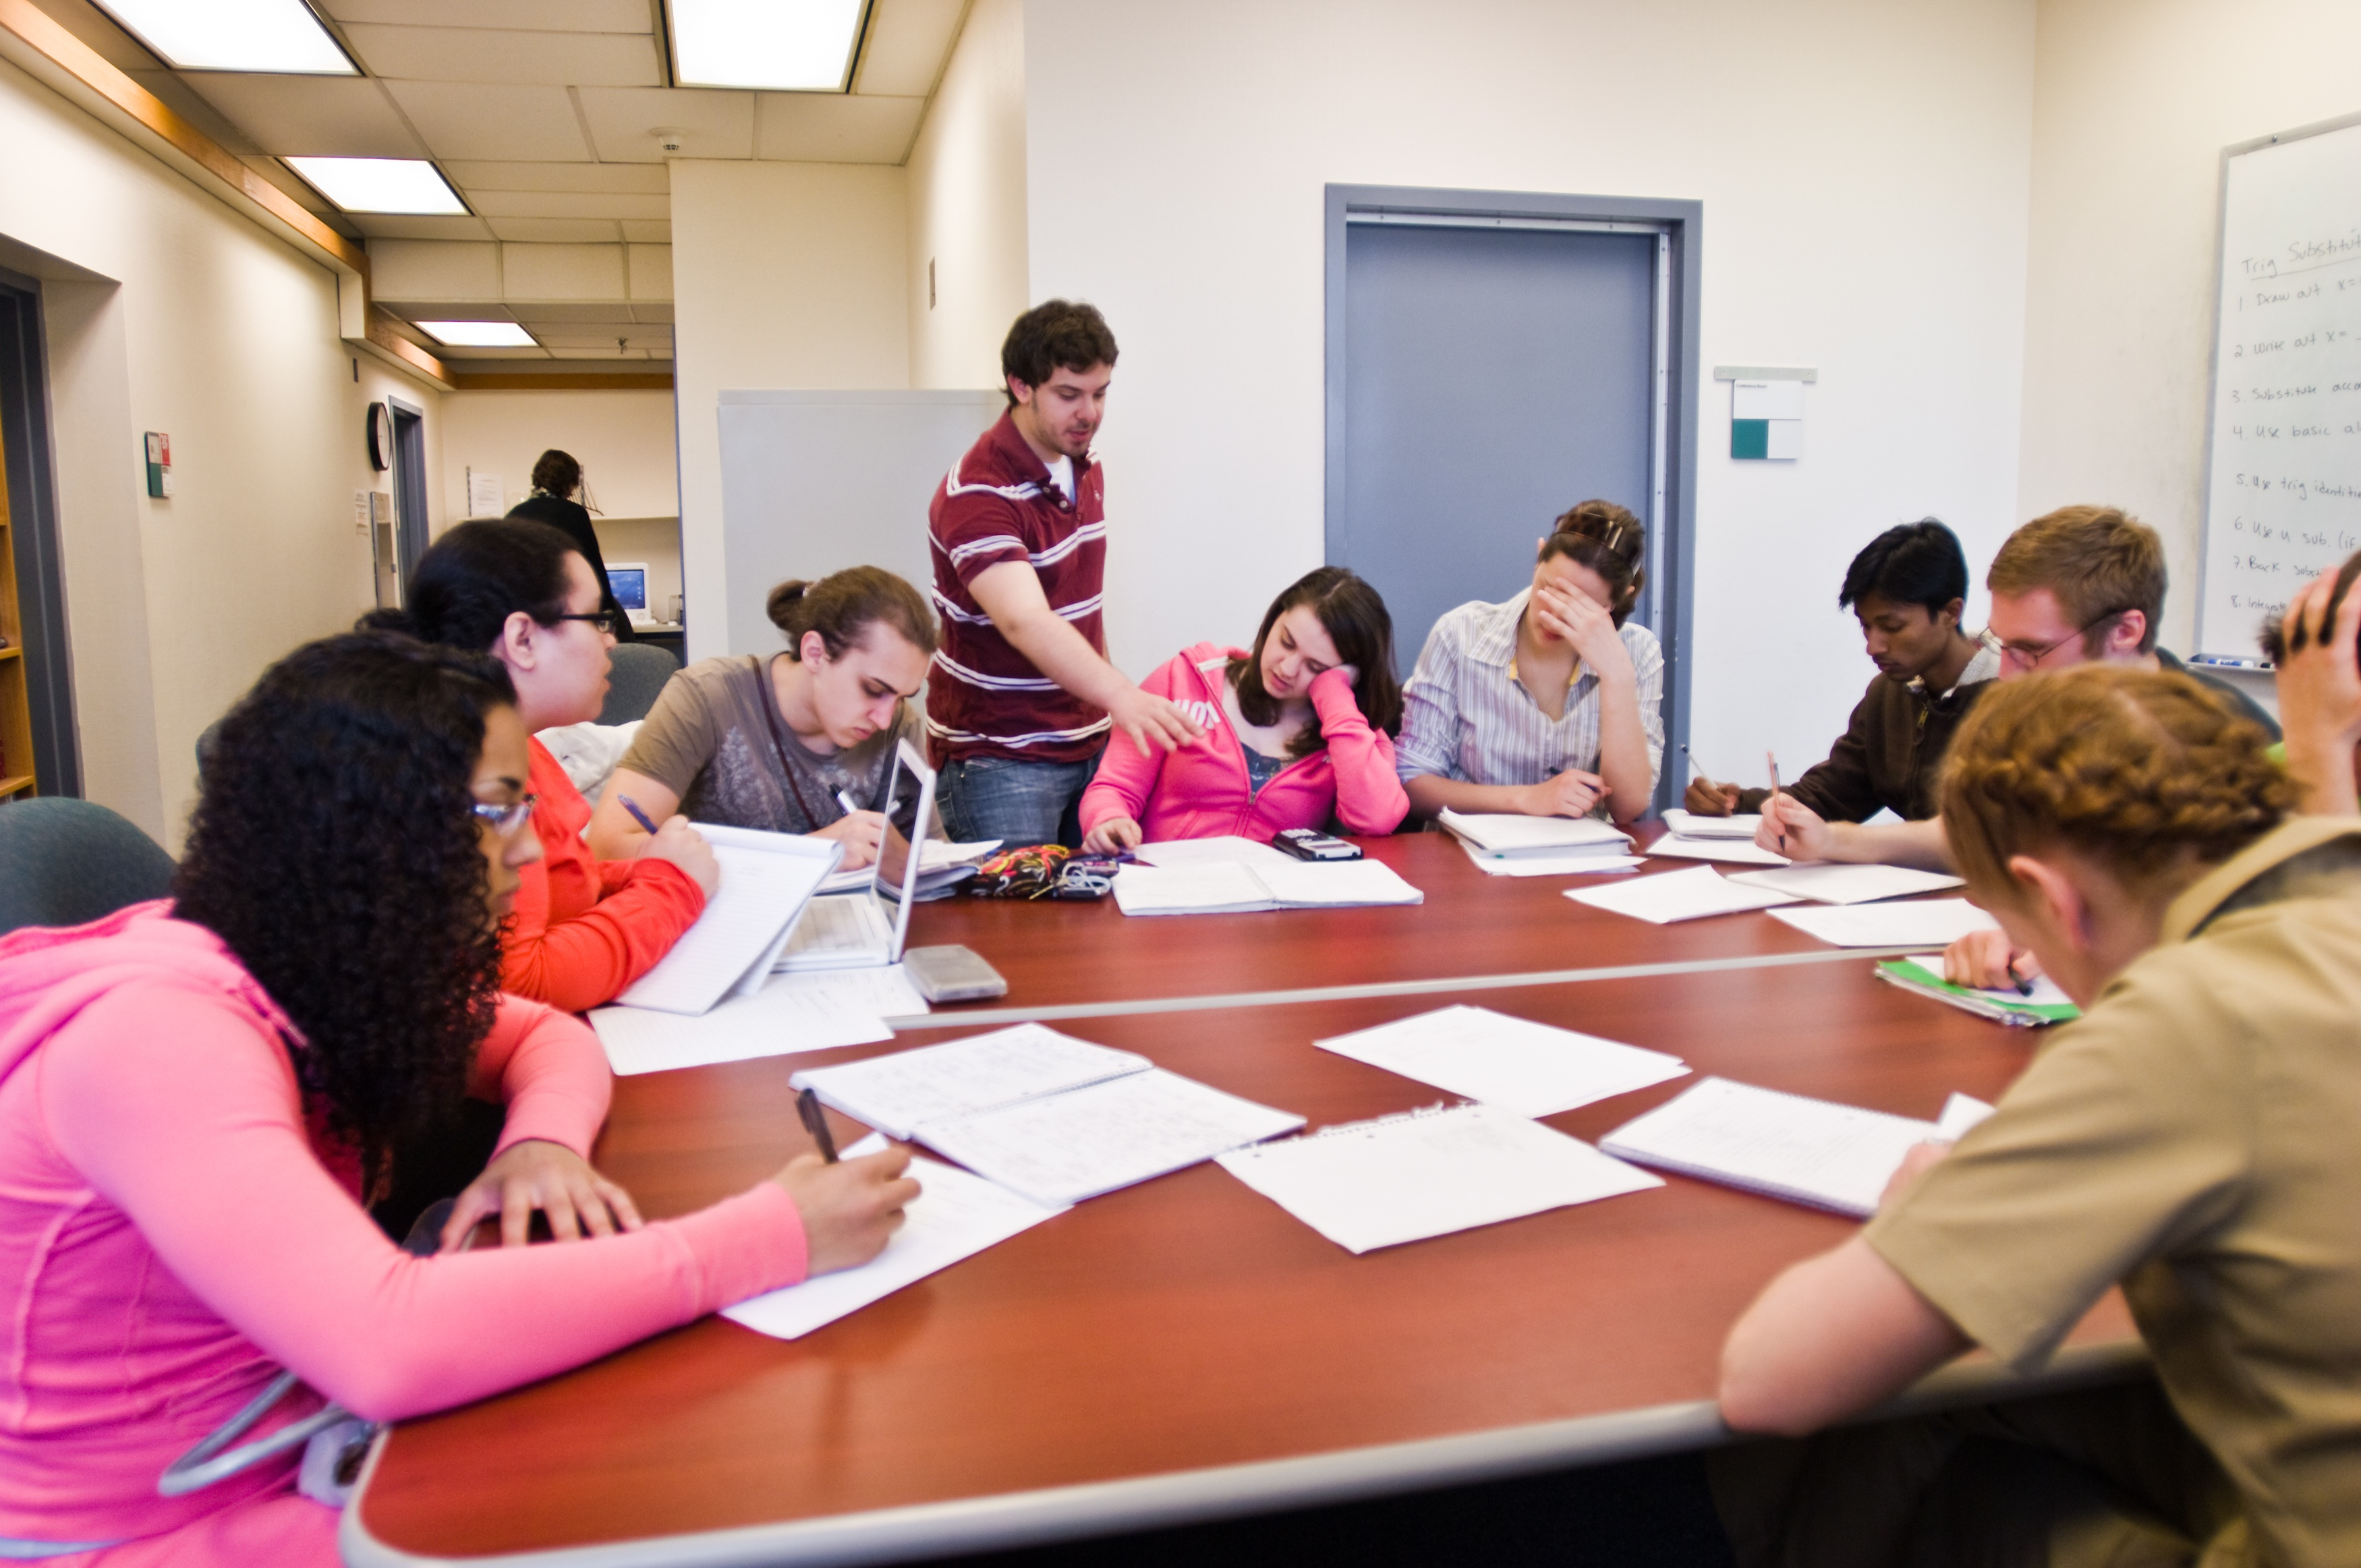 quick links center for workshop education cwe more about our workshops ...: www.rochester.edu/college/cetl/undergraduate/workshops.html